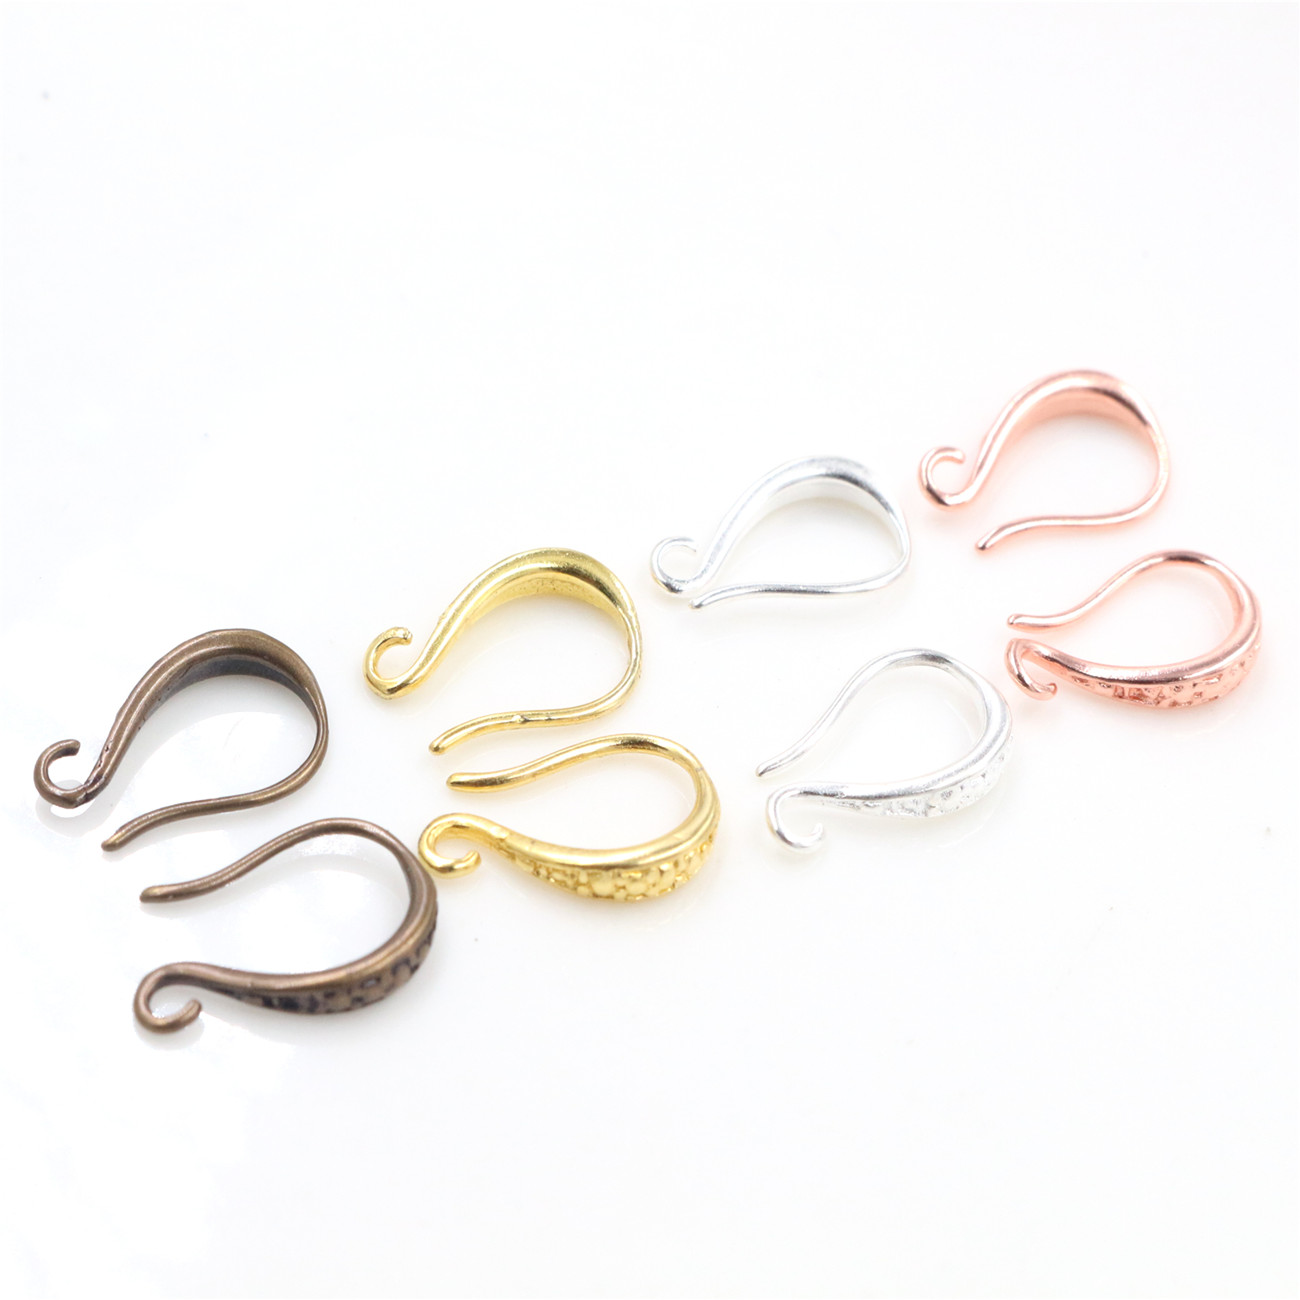 15x10mm 20pcs (10 Pair) High Quality Silver Color Bronze Rose Gold Color Earring Hooks Wire Settings Base Settings Whole Sale